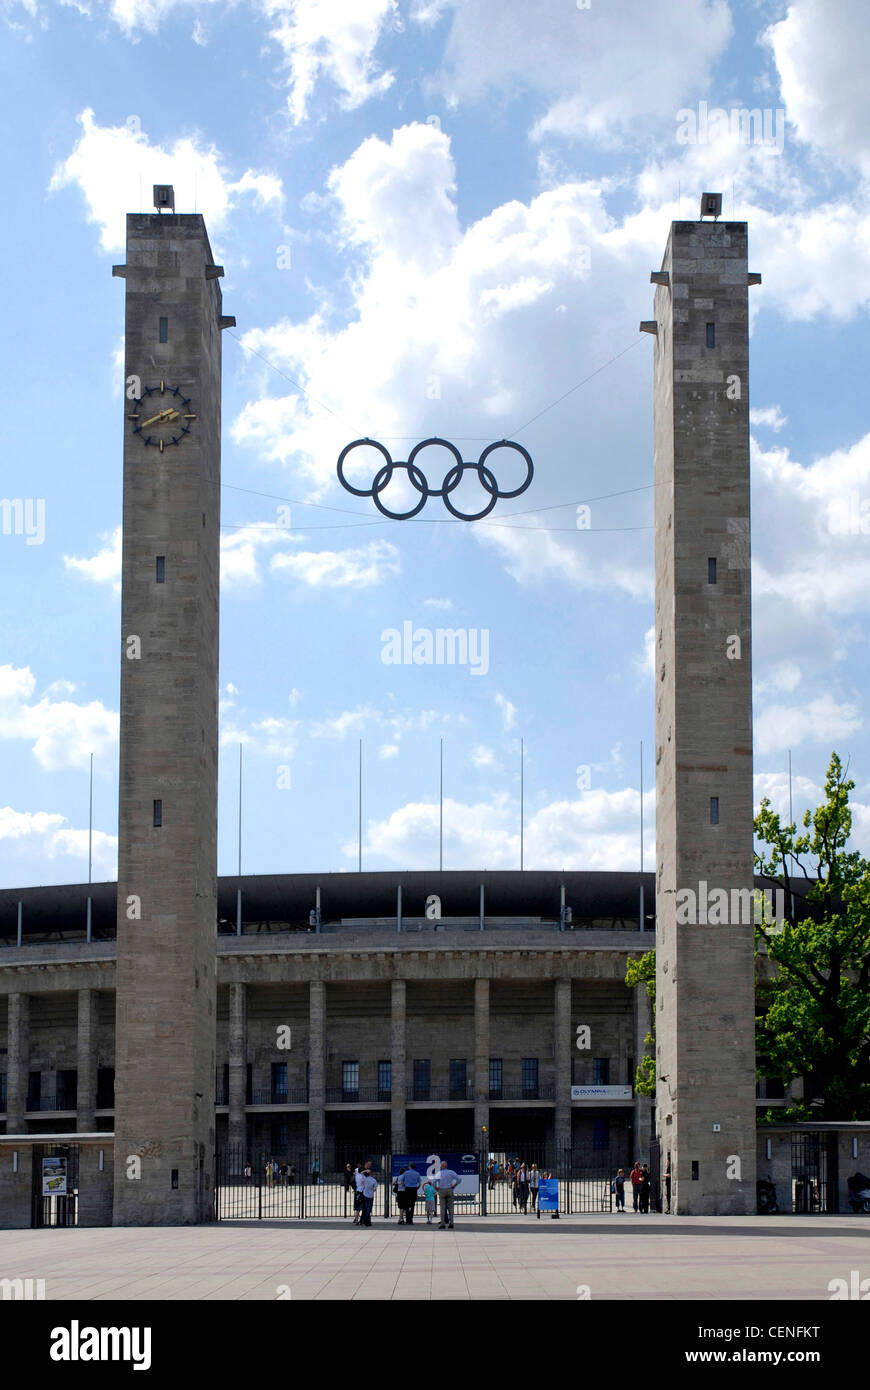 Olympic stadium in Berlin with the Olympic rings over the main entrance. - Stock Image